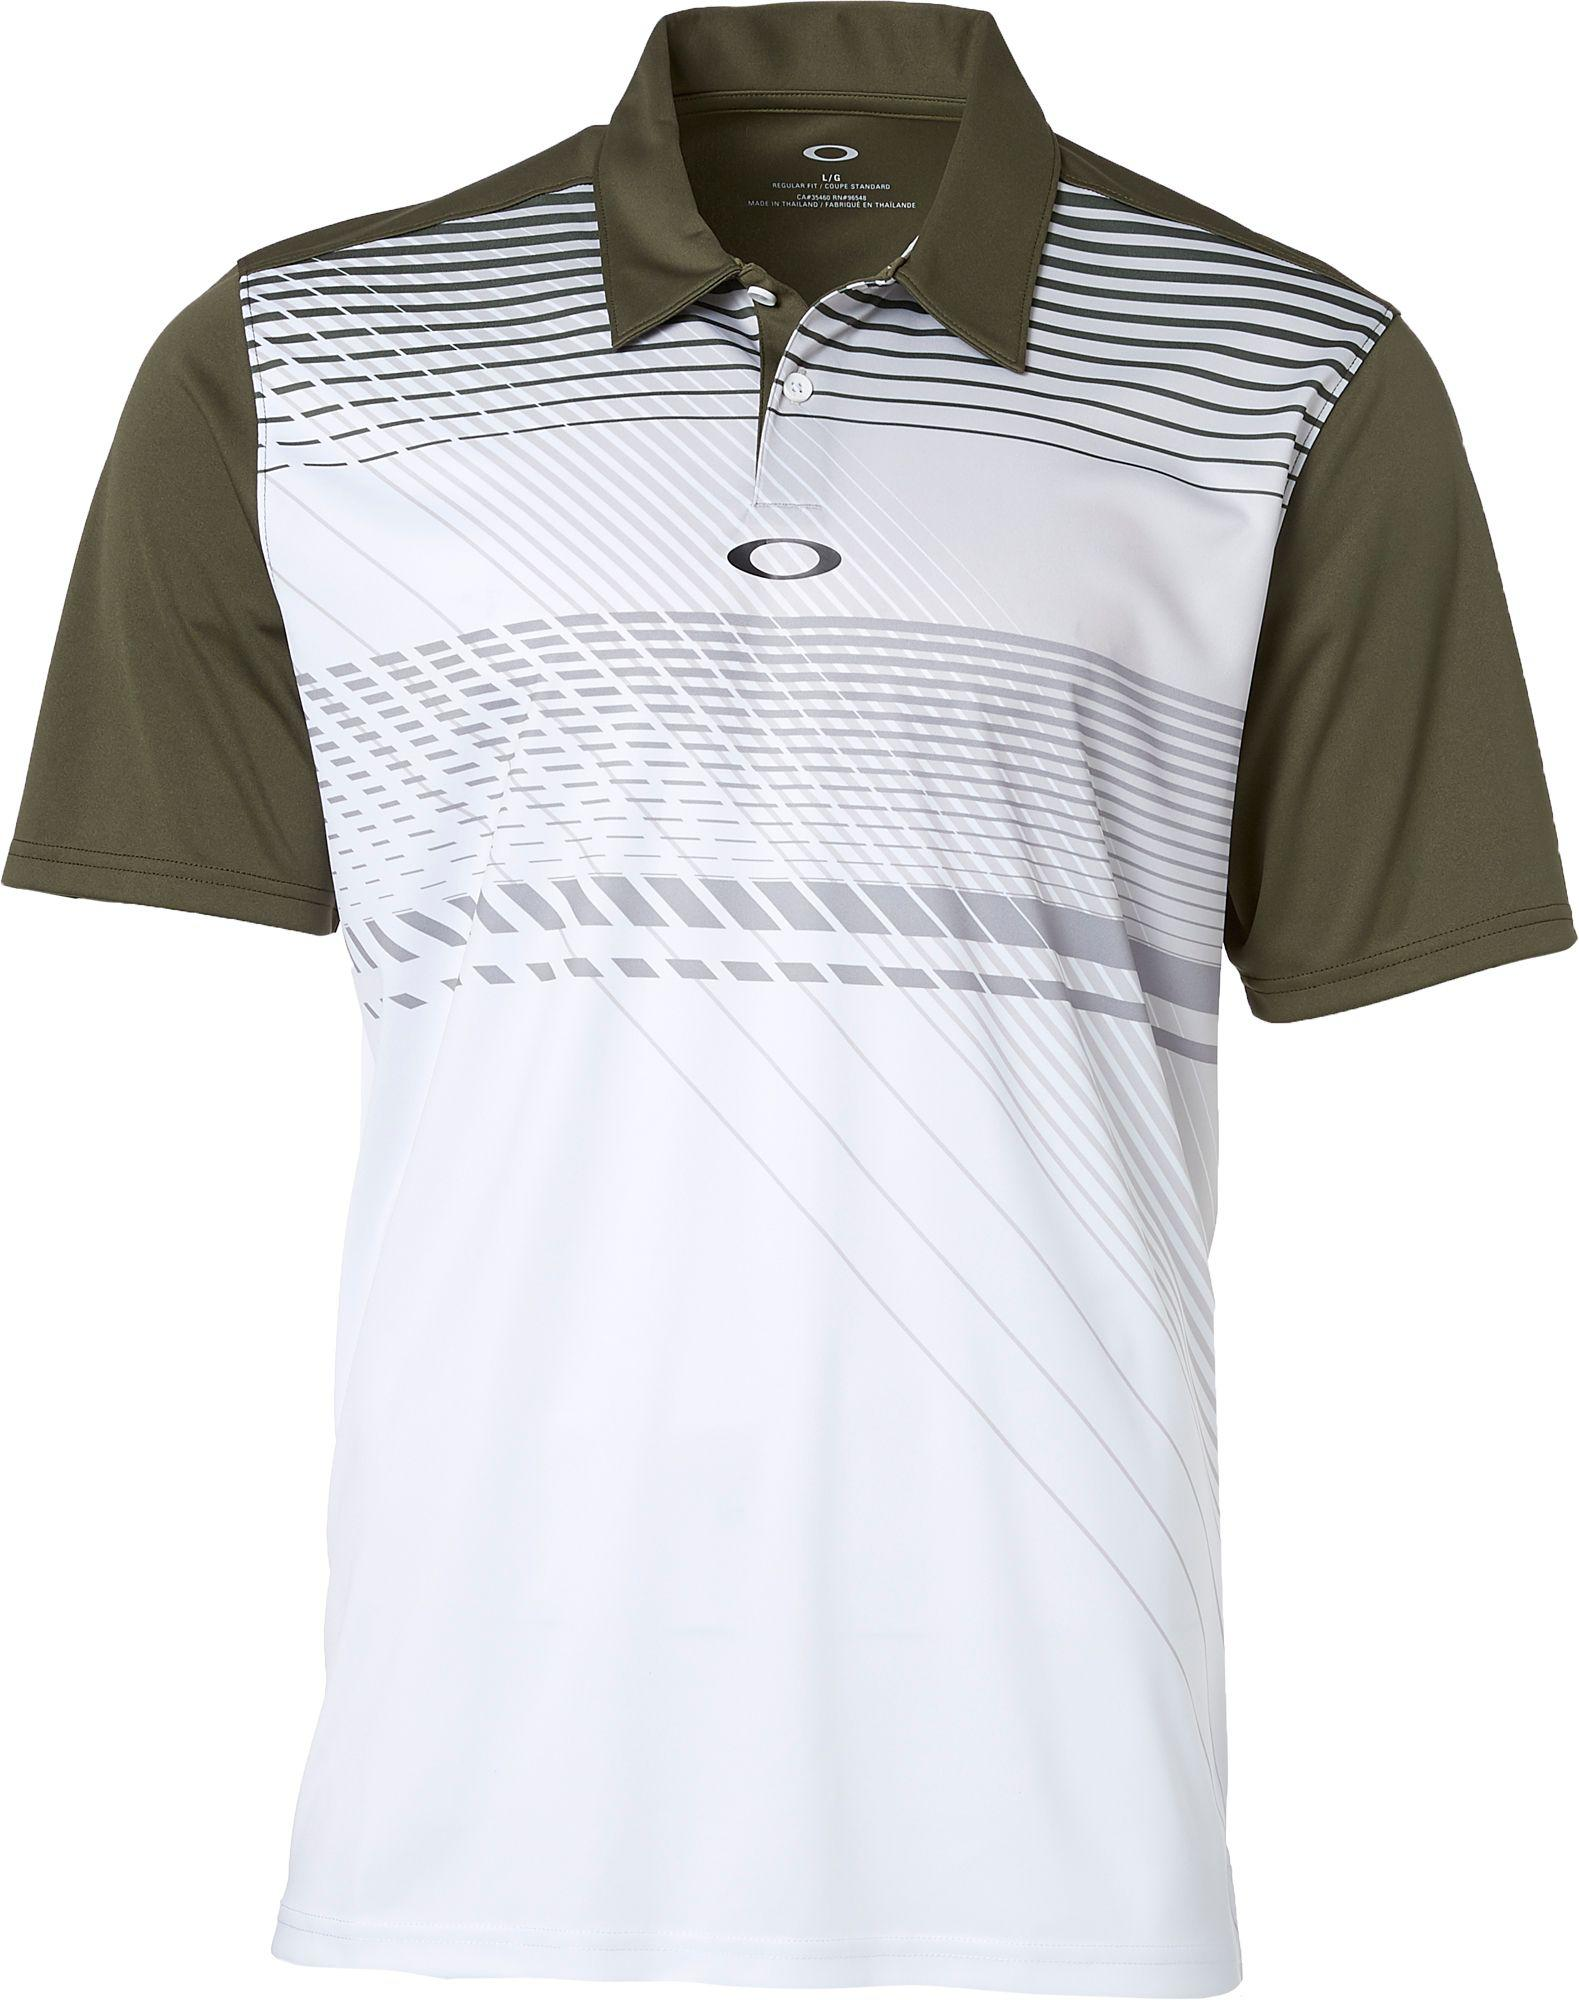 189fa2e5f4 Oakley Slim Fit Golf Shirt - BCD Tofu House